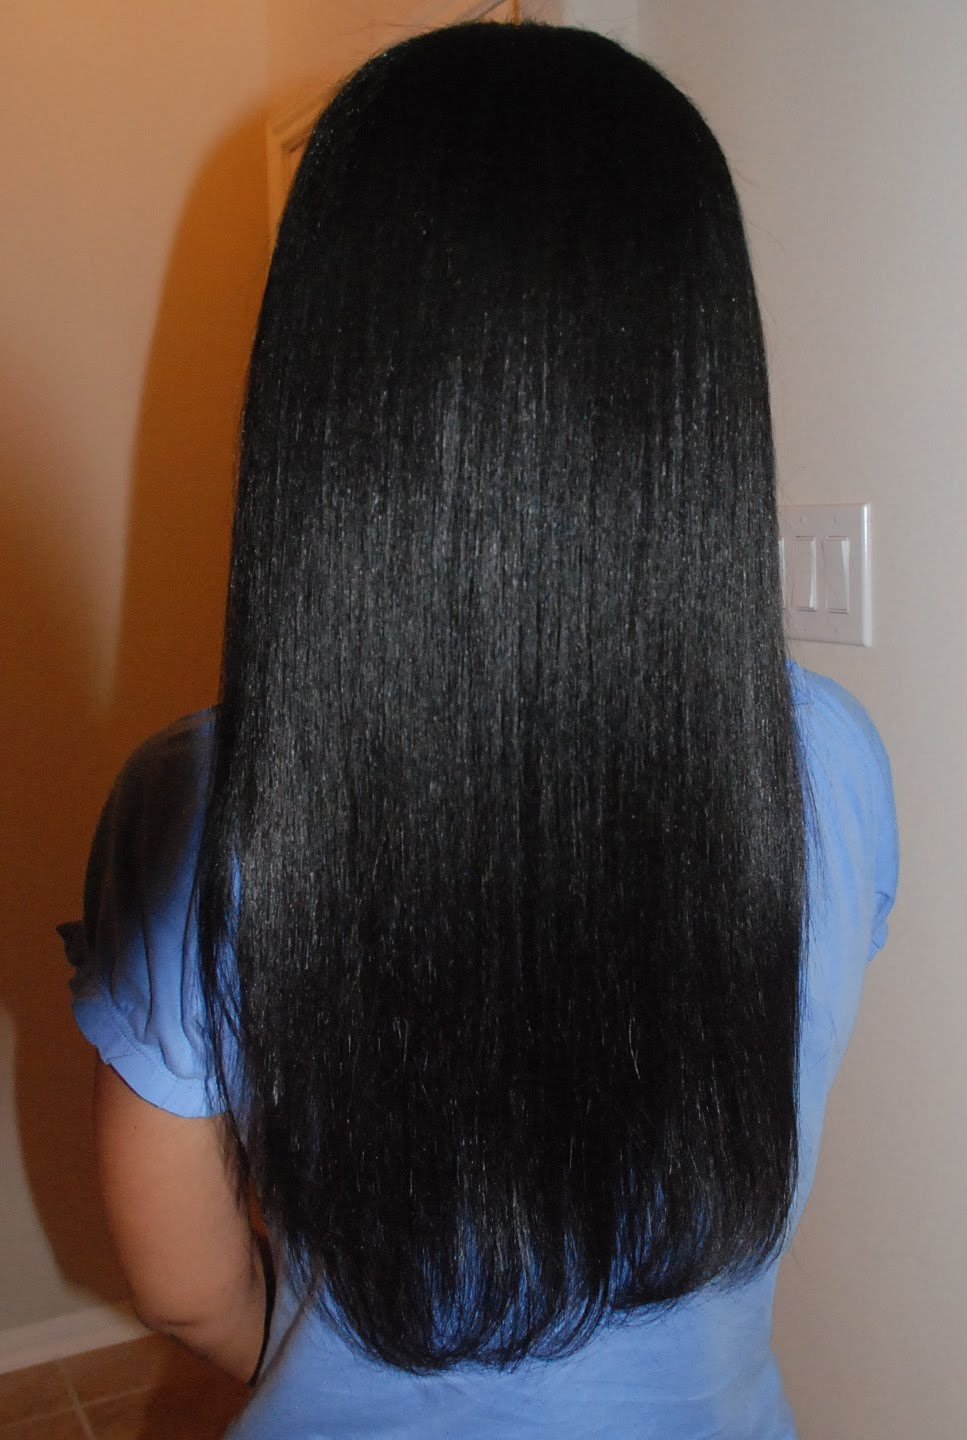 Healthy Relaxed Hair Feature How Does She Get Such